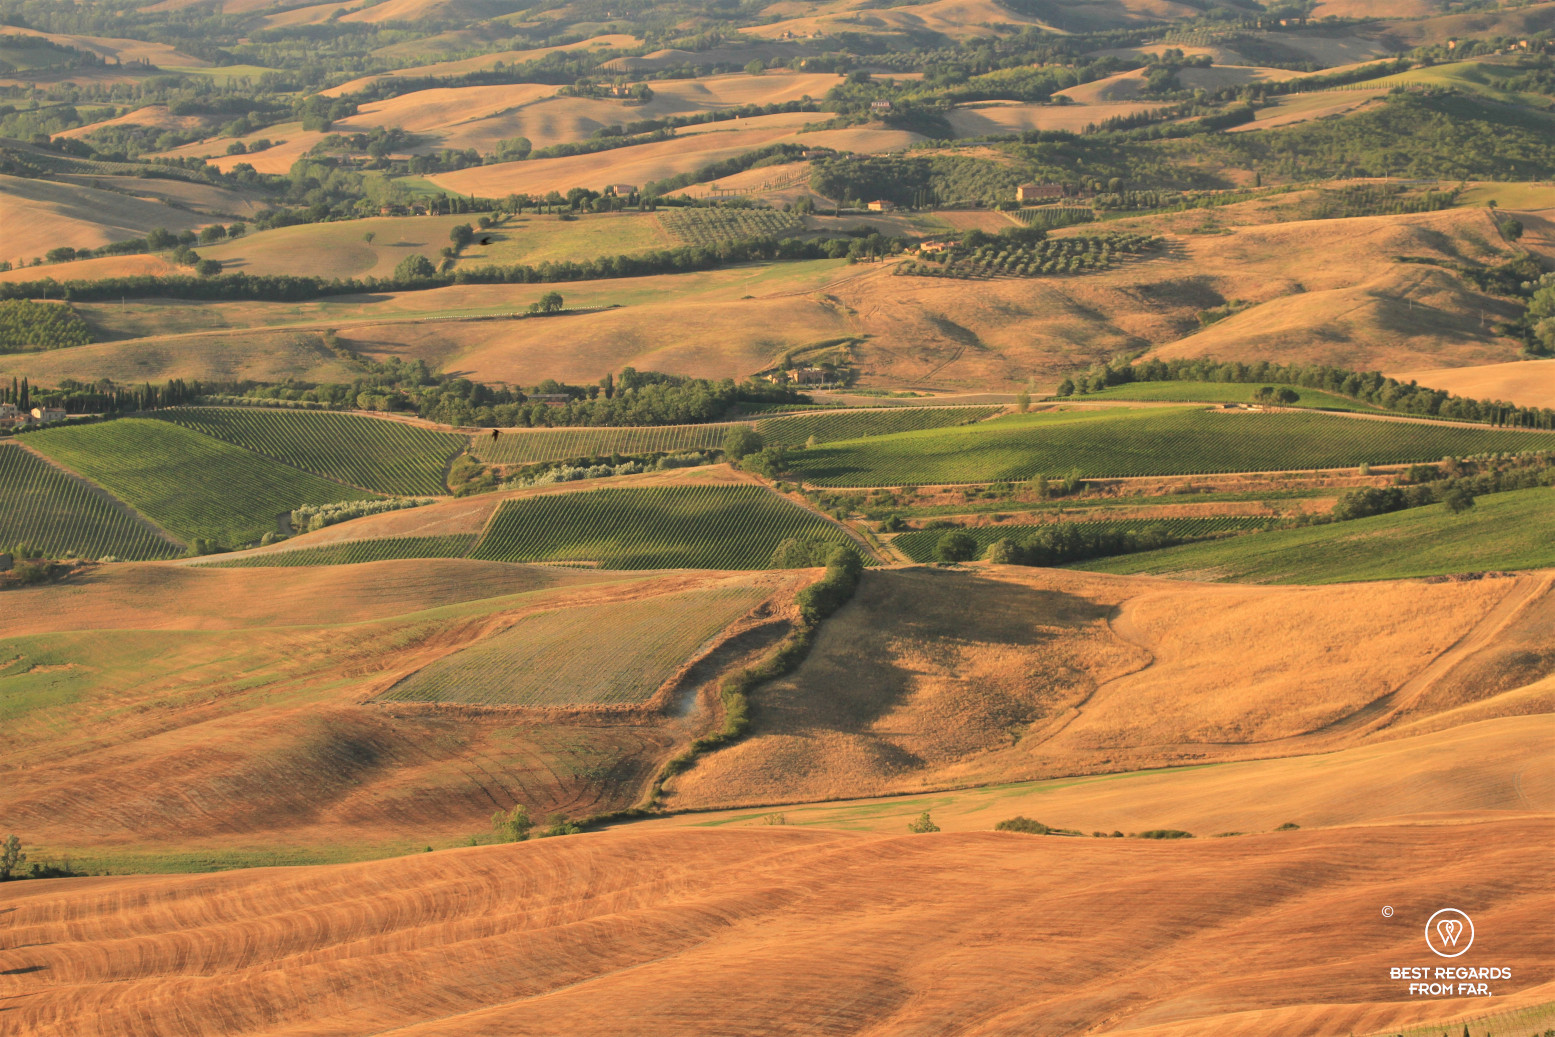 Typical Tuscan landscapes in Italy